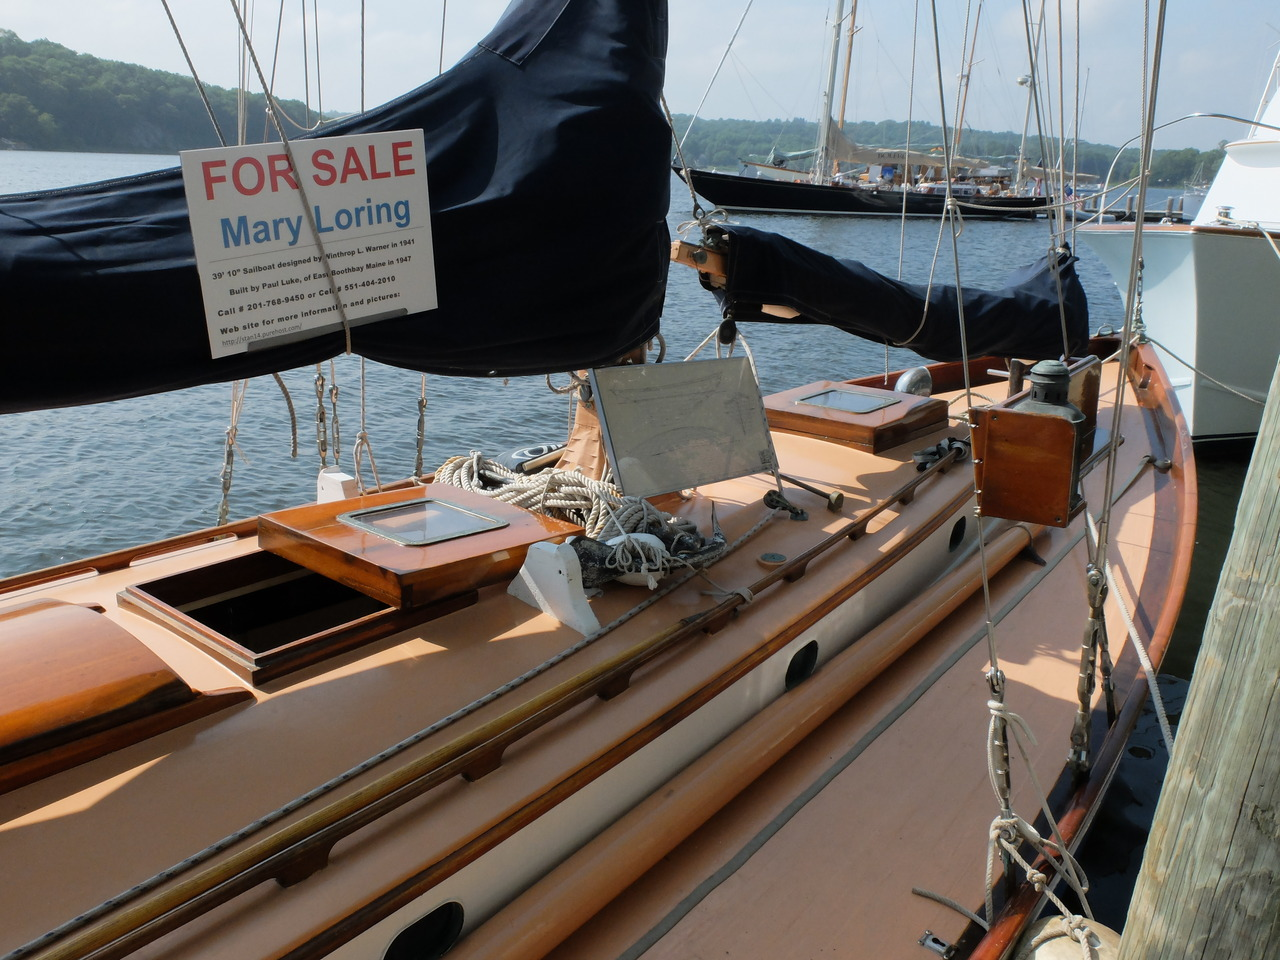 Mary Looring A Classic Wooden Boat For Sale Worlds End